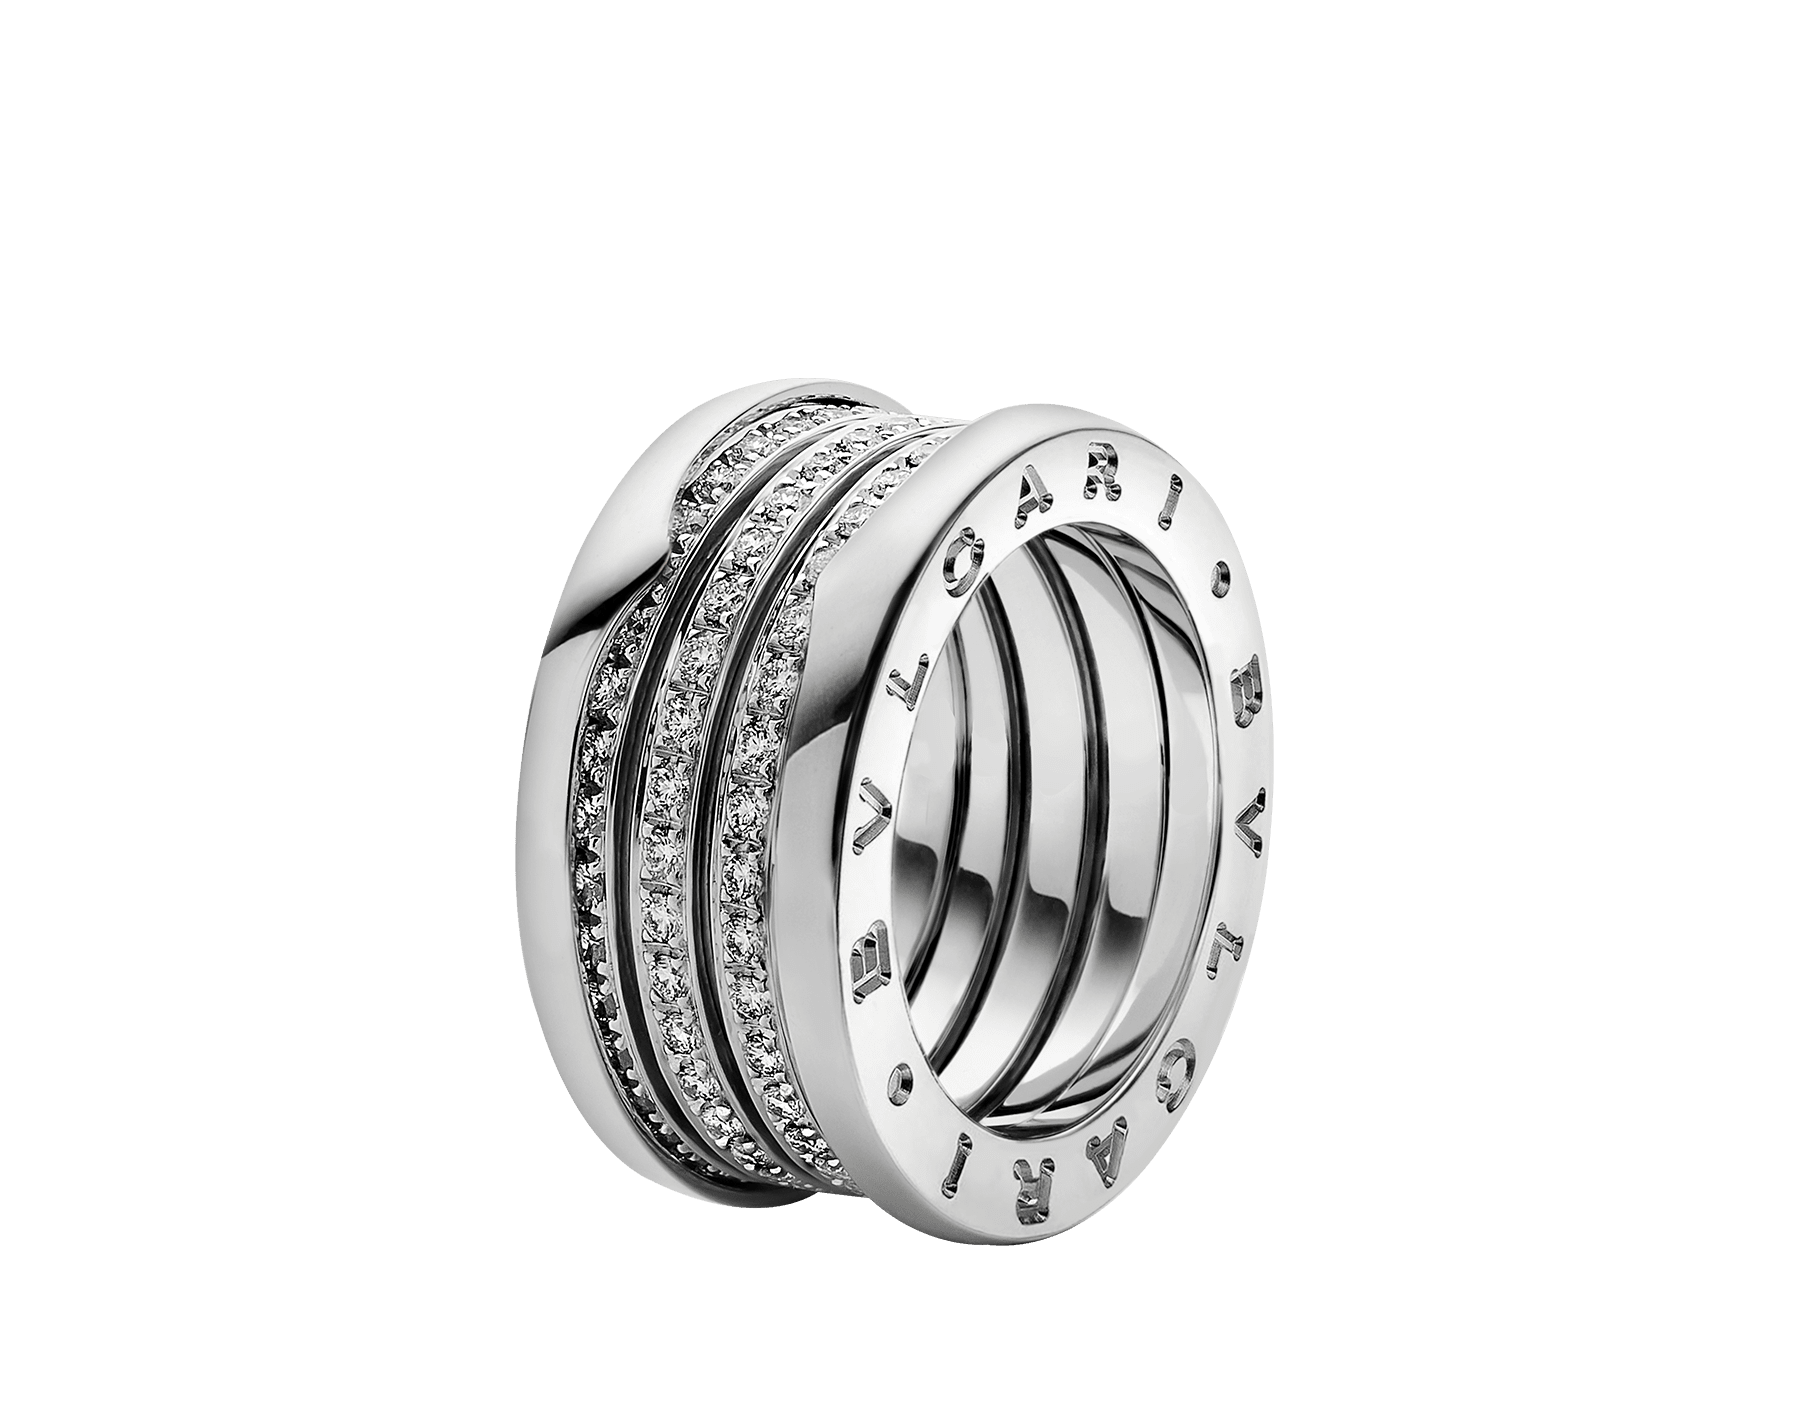 B.zero1 four-band ring in 18 kt white gold, set with pavé diamonds on the spiral. B-zero1-4-bands-AN850556 image 1